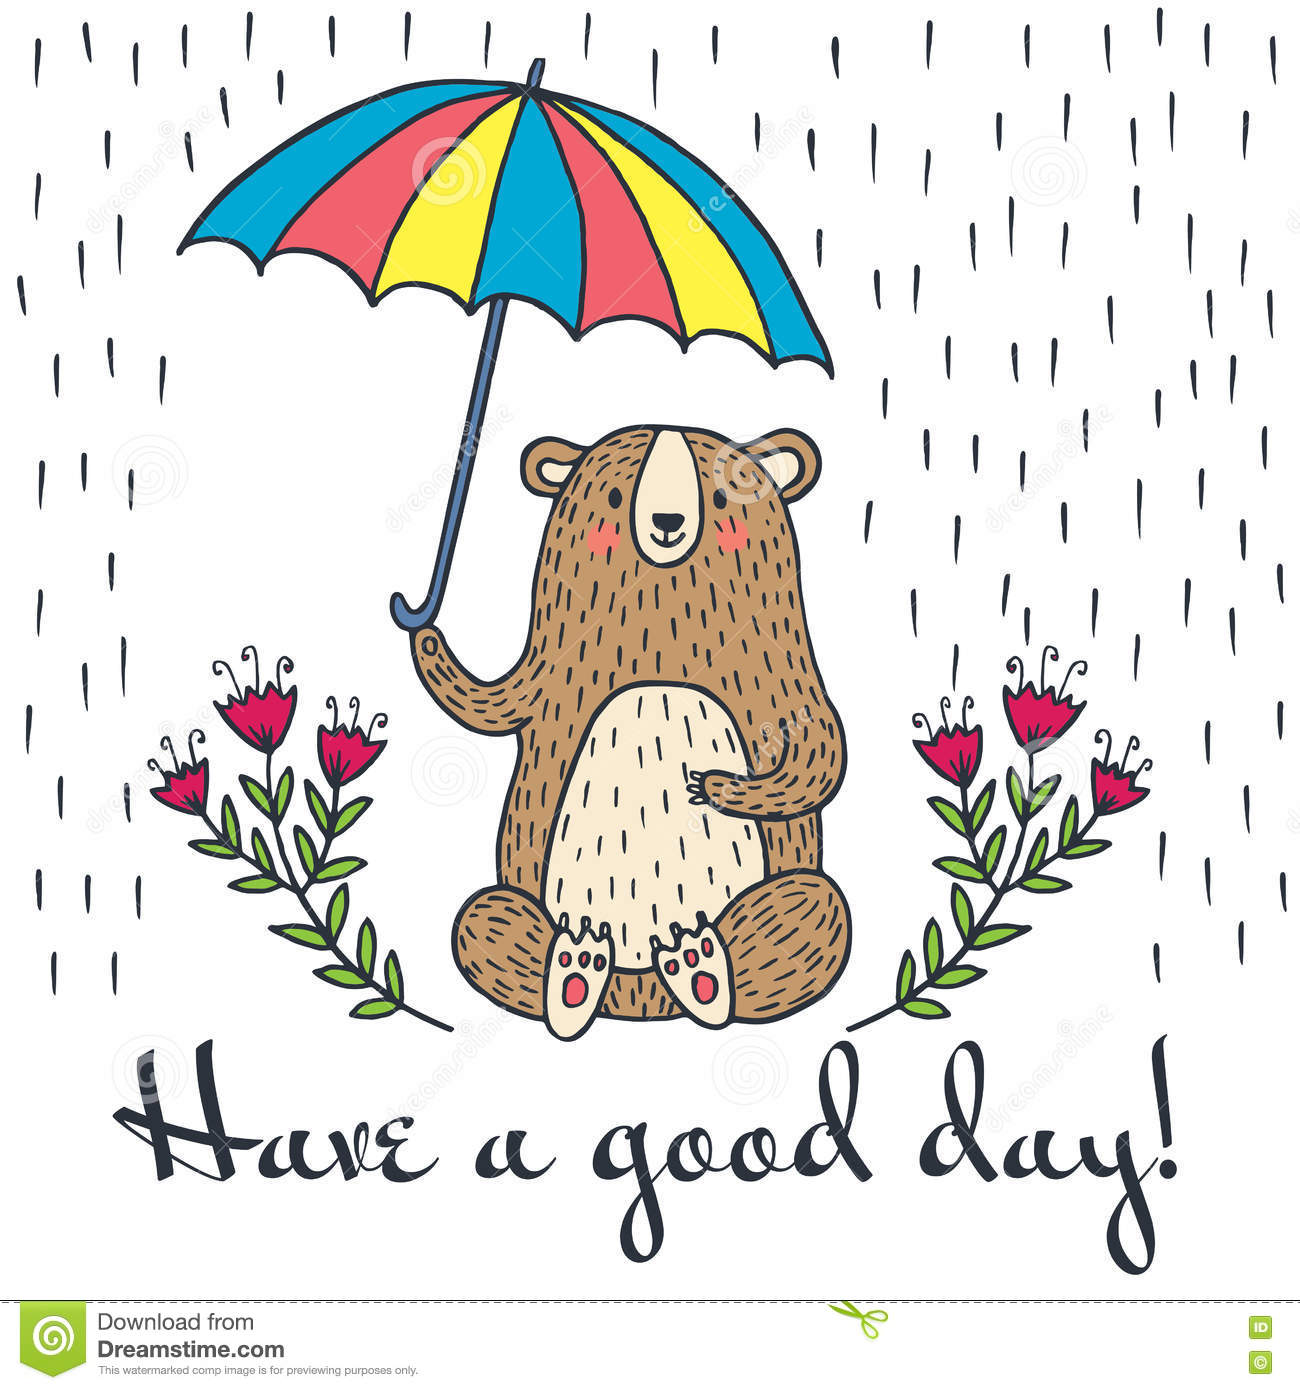 Have a good day greeting card stock illustration illustration of download have a good day greeting card stock illustration illustration of nice lettering m4hsunfo